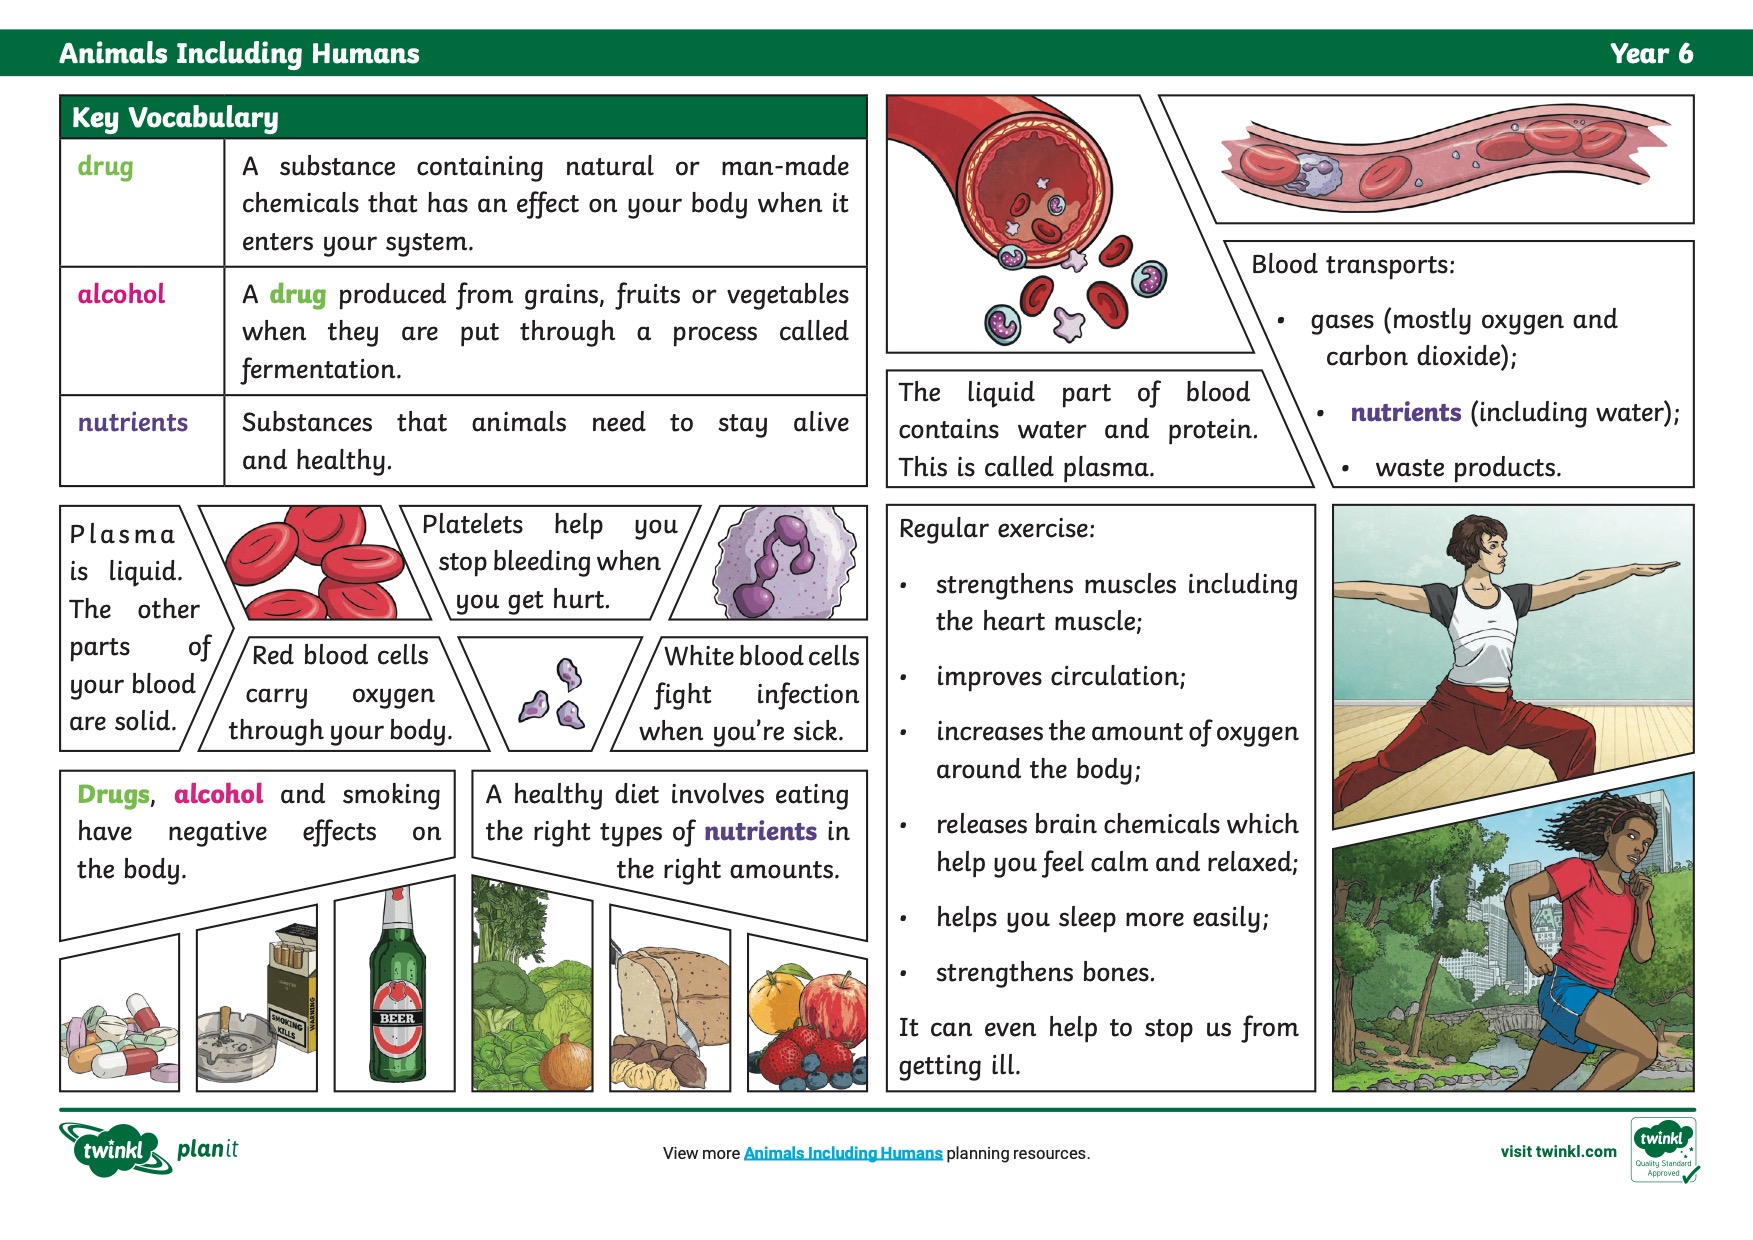 T Sc 2549643 Science Knowledge Organiser Animals Including Humans Year 6 Ver 6 2